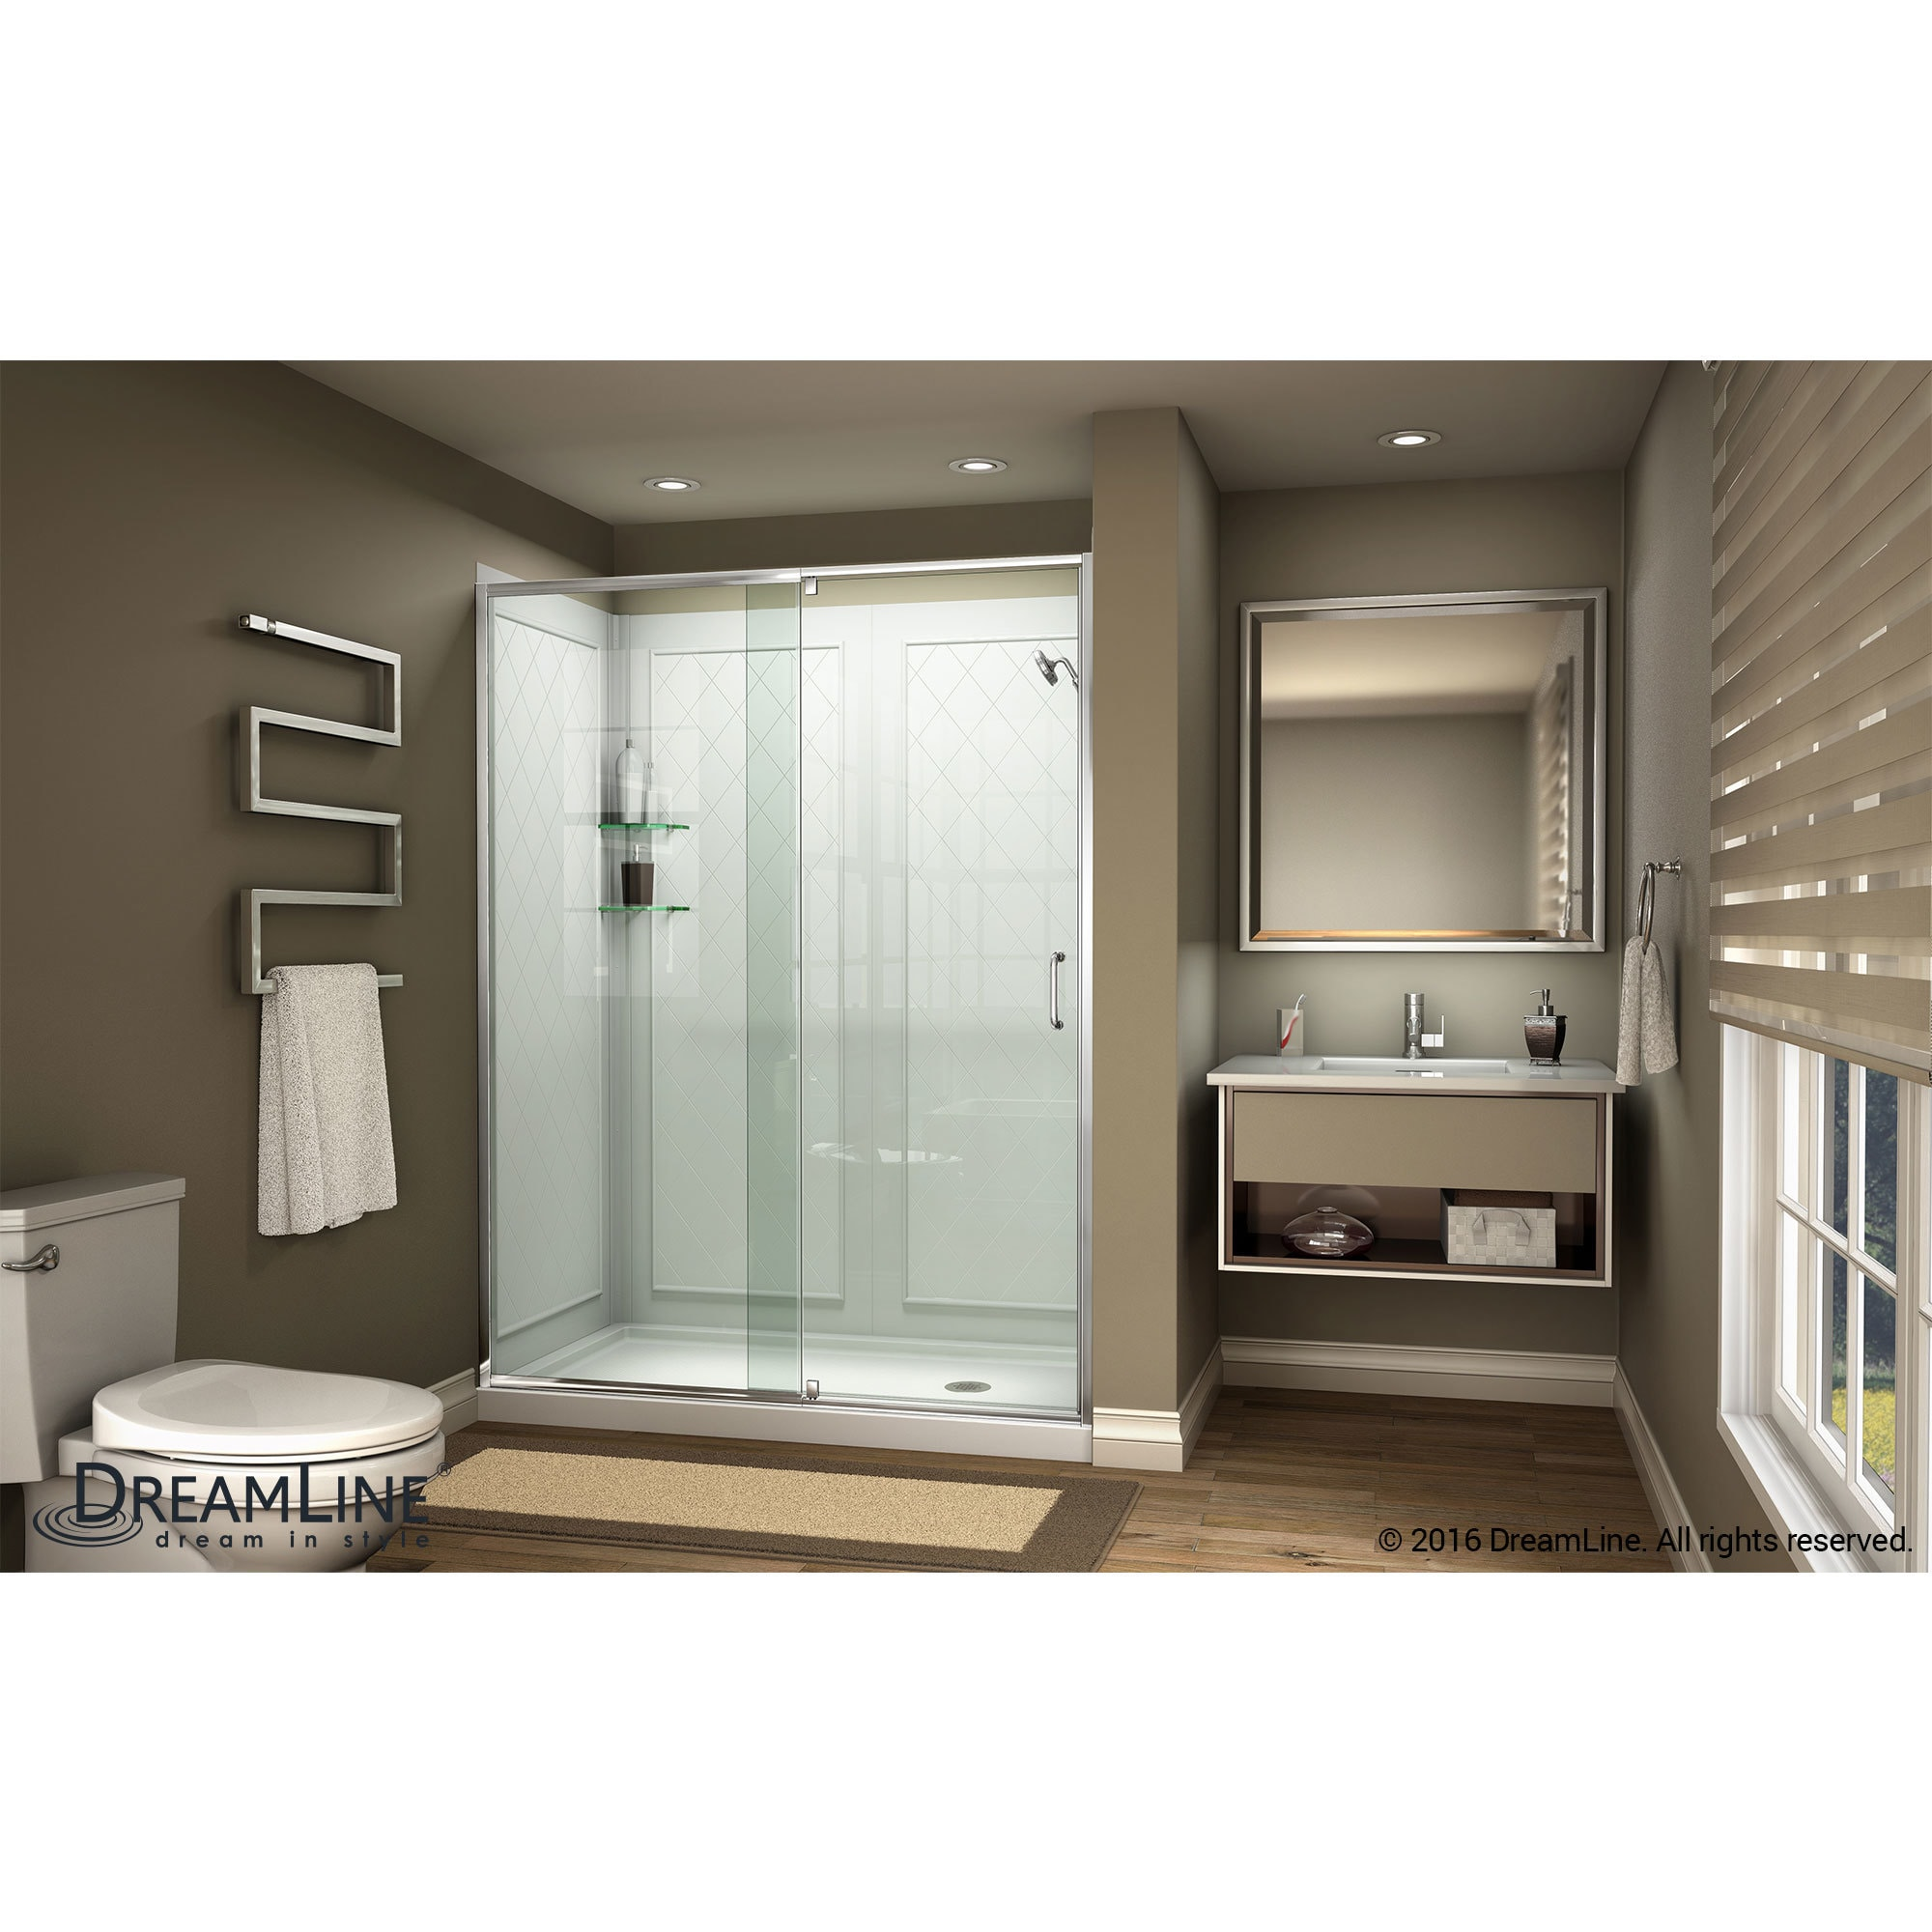 Dreamline Flex 56 60 In W X 72 In H Semi Frameless Pivot Shower Door 56 60 W